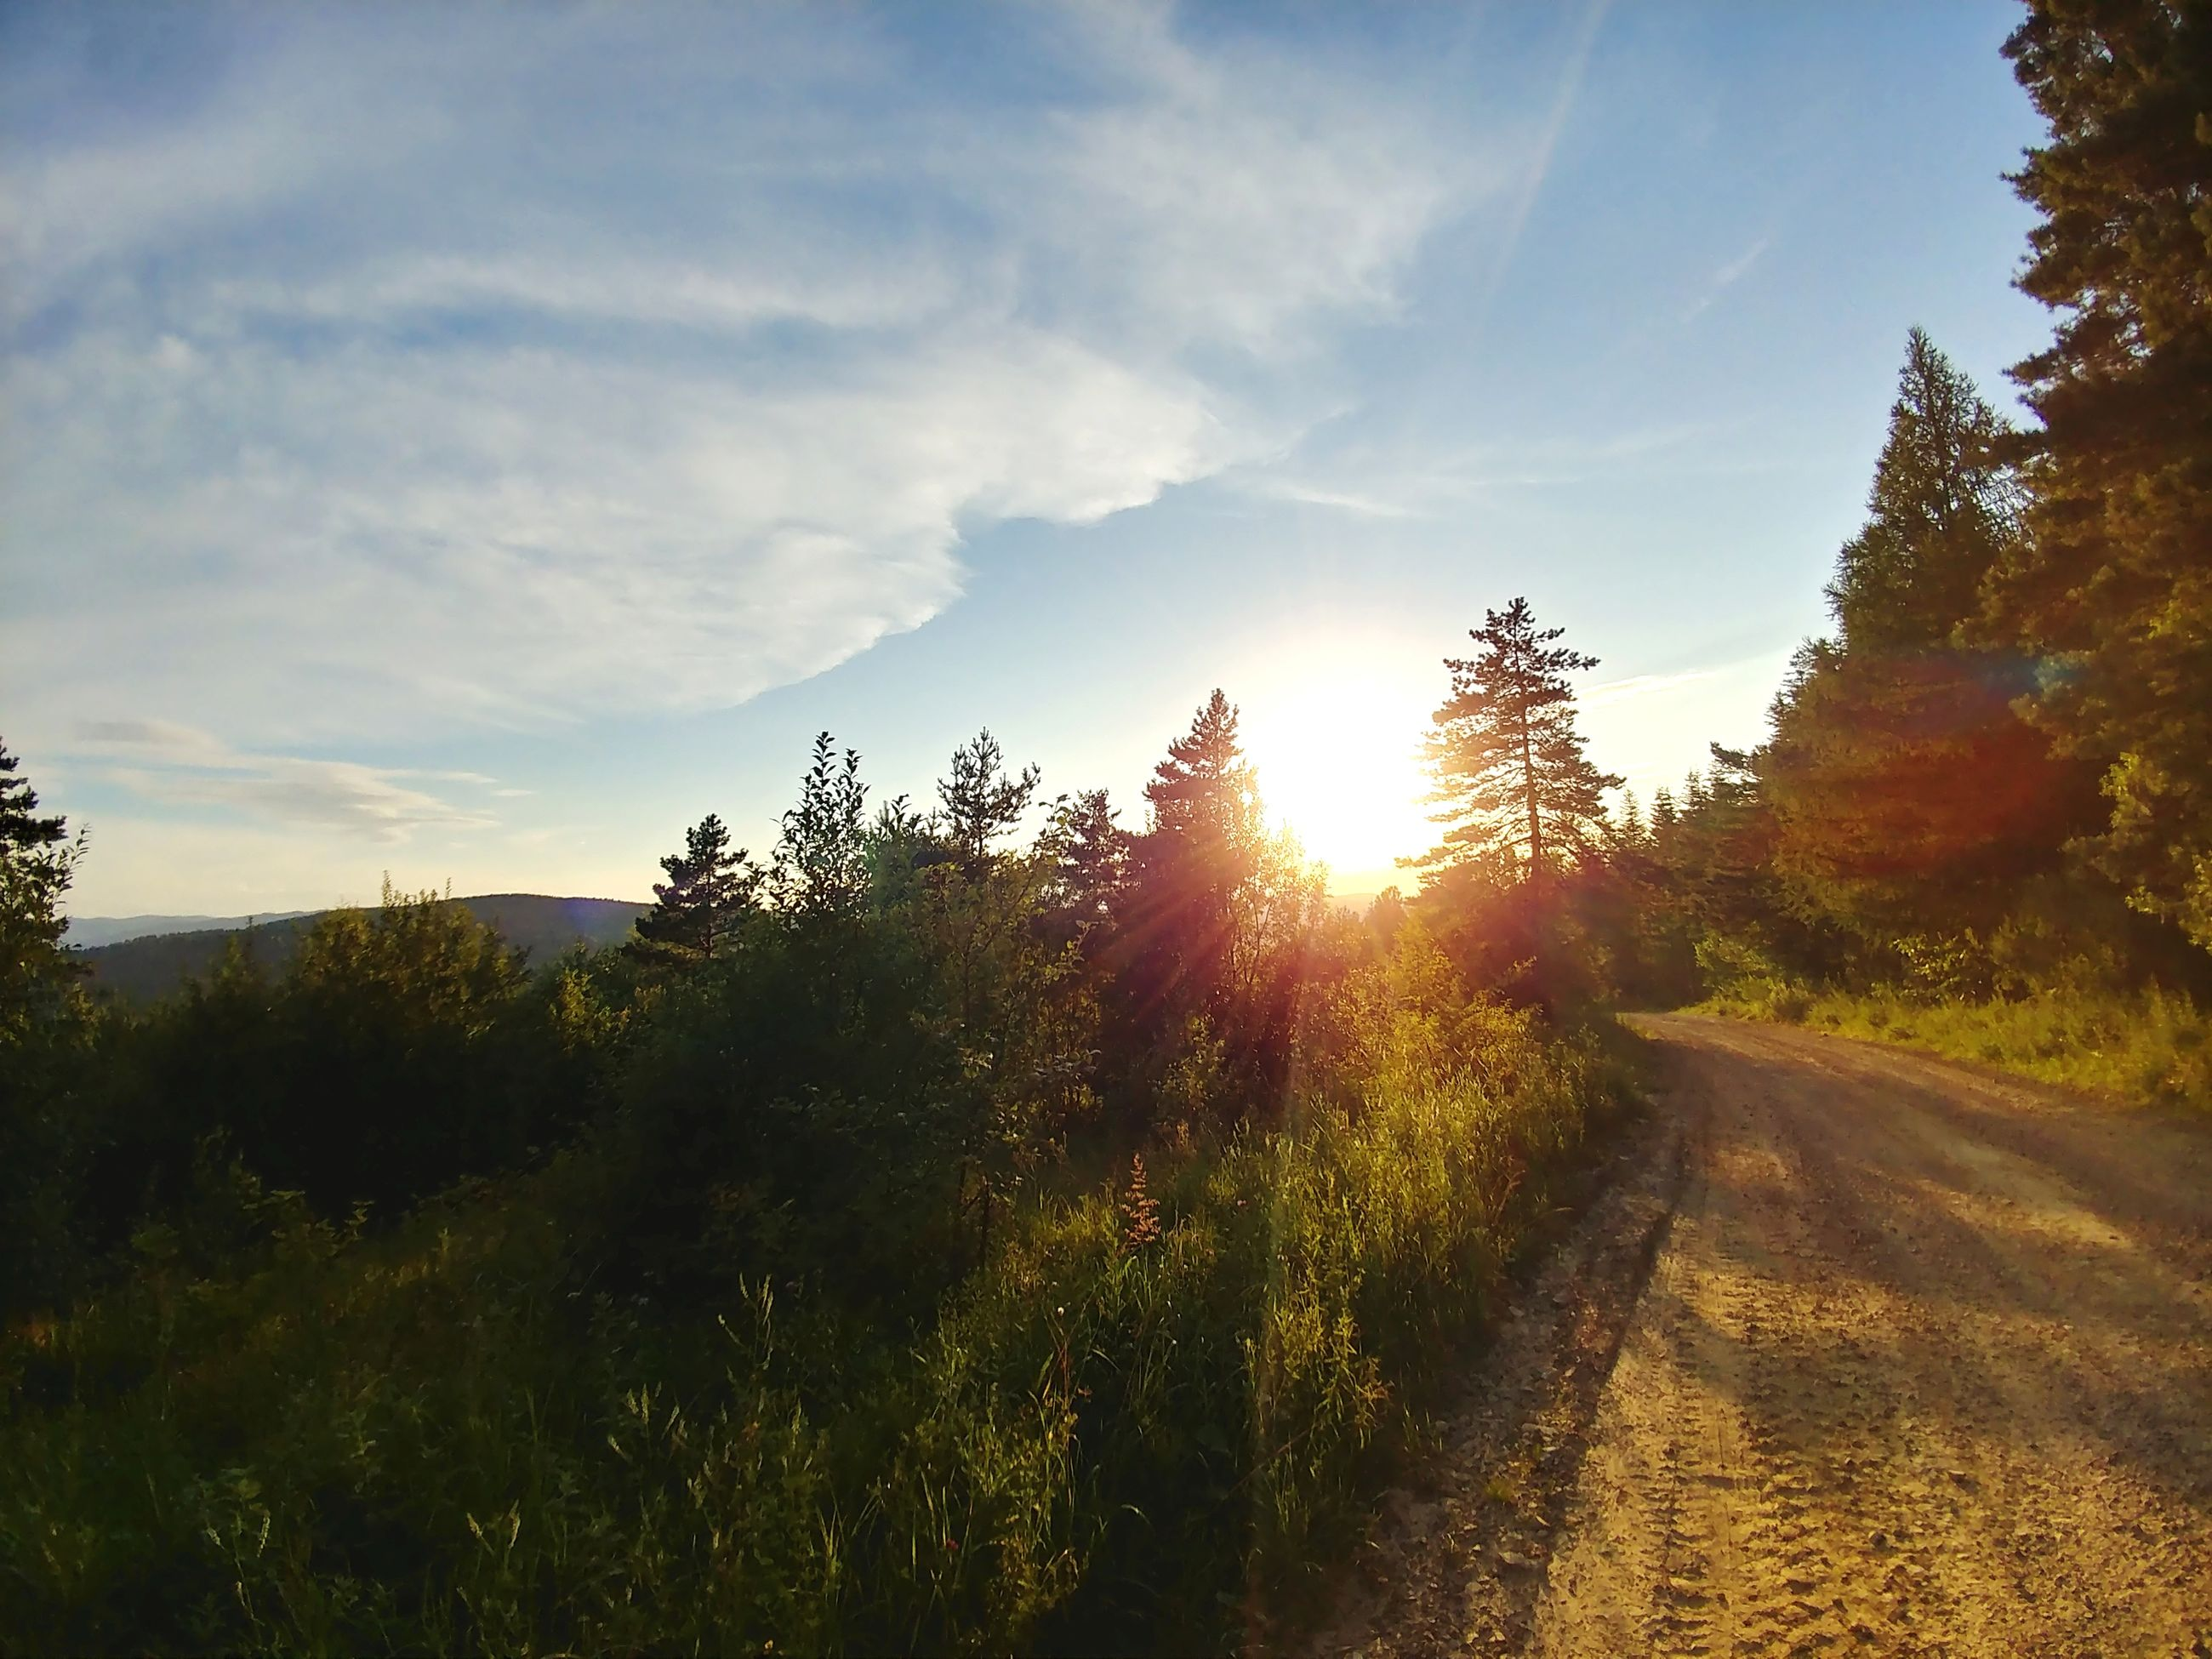 sky, plant, tree, sunlight, direction, nature, cloud - sky, road, beauty in nature, transportation, tranquility, tranquil scene, sun, landscape, the way forward, no people, growth, non-urban scene, sunset, environment, lens flare, outdoors, bright